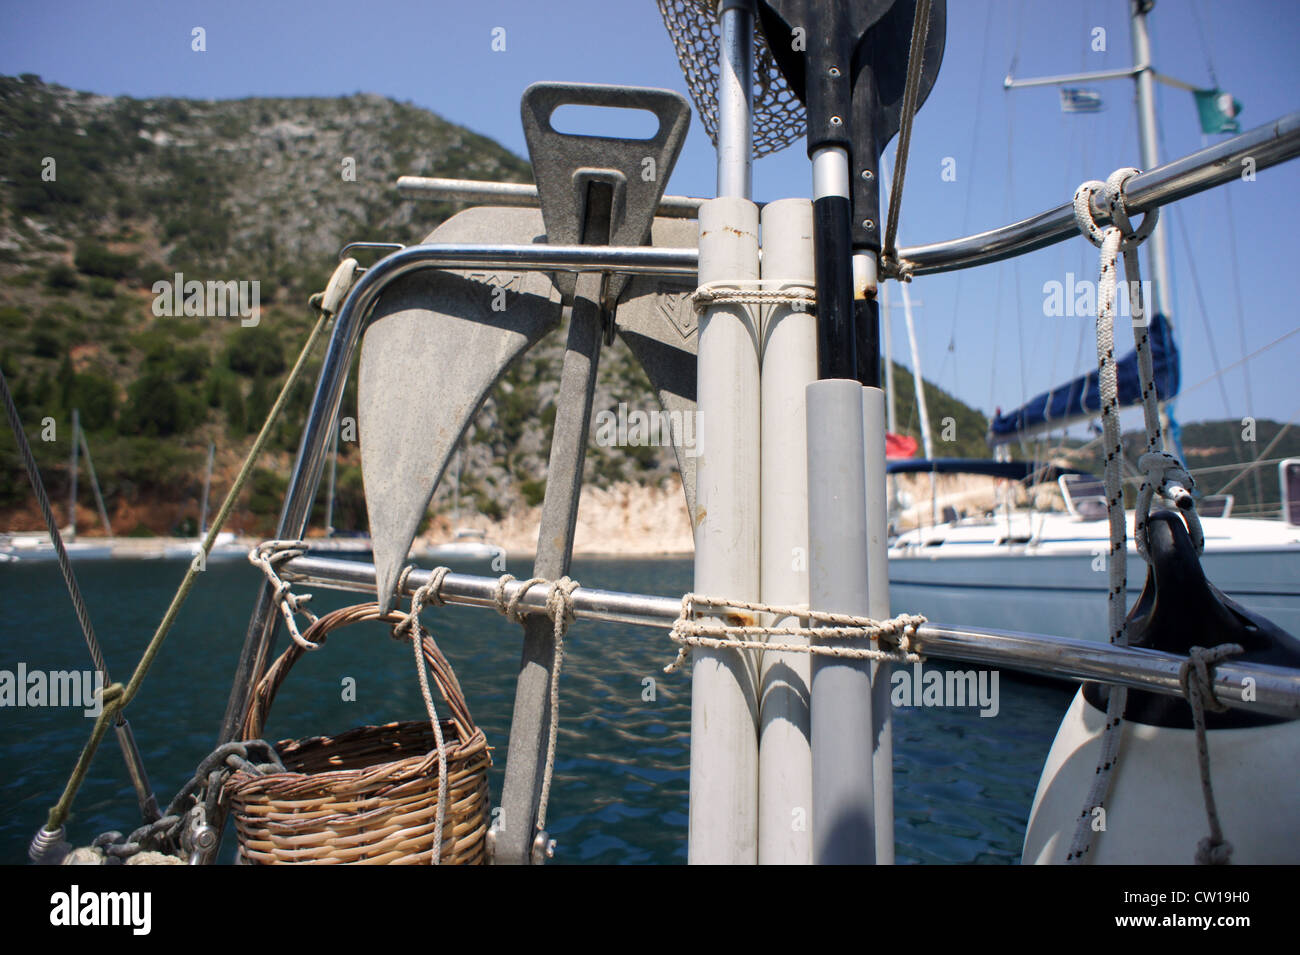 Detail of a sailing boat, Ionian Islands, Greece - Stock Image